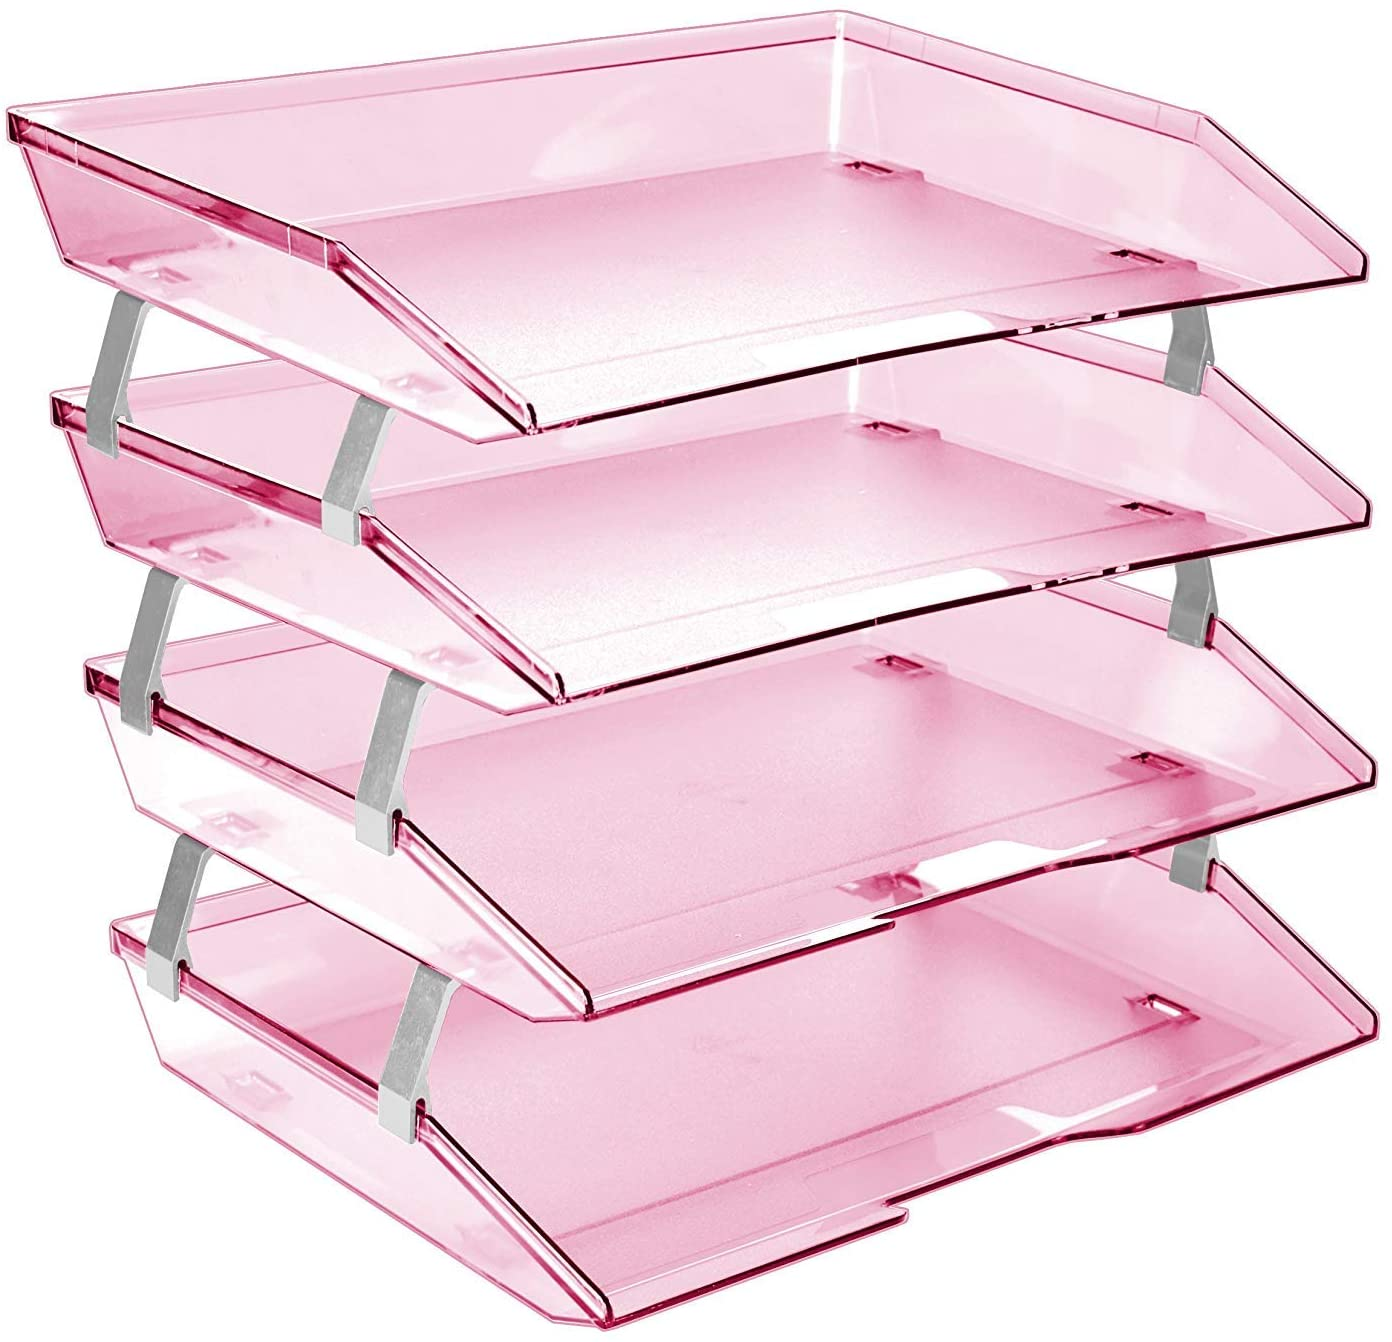 Acrimet Facility 4 Tier Letter Tray Side Load Plastic Desktop File Organizer (Clear Pink Color)